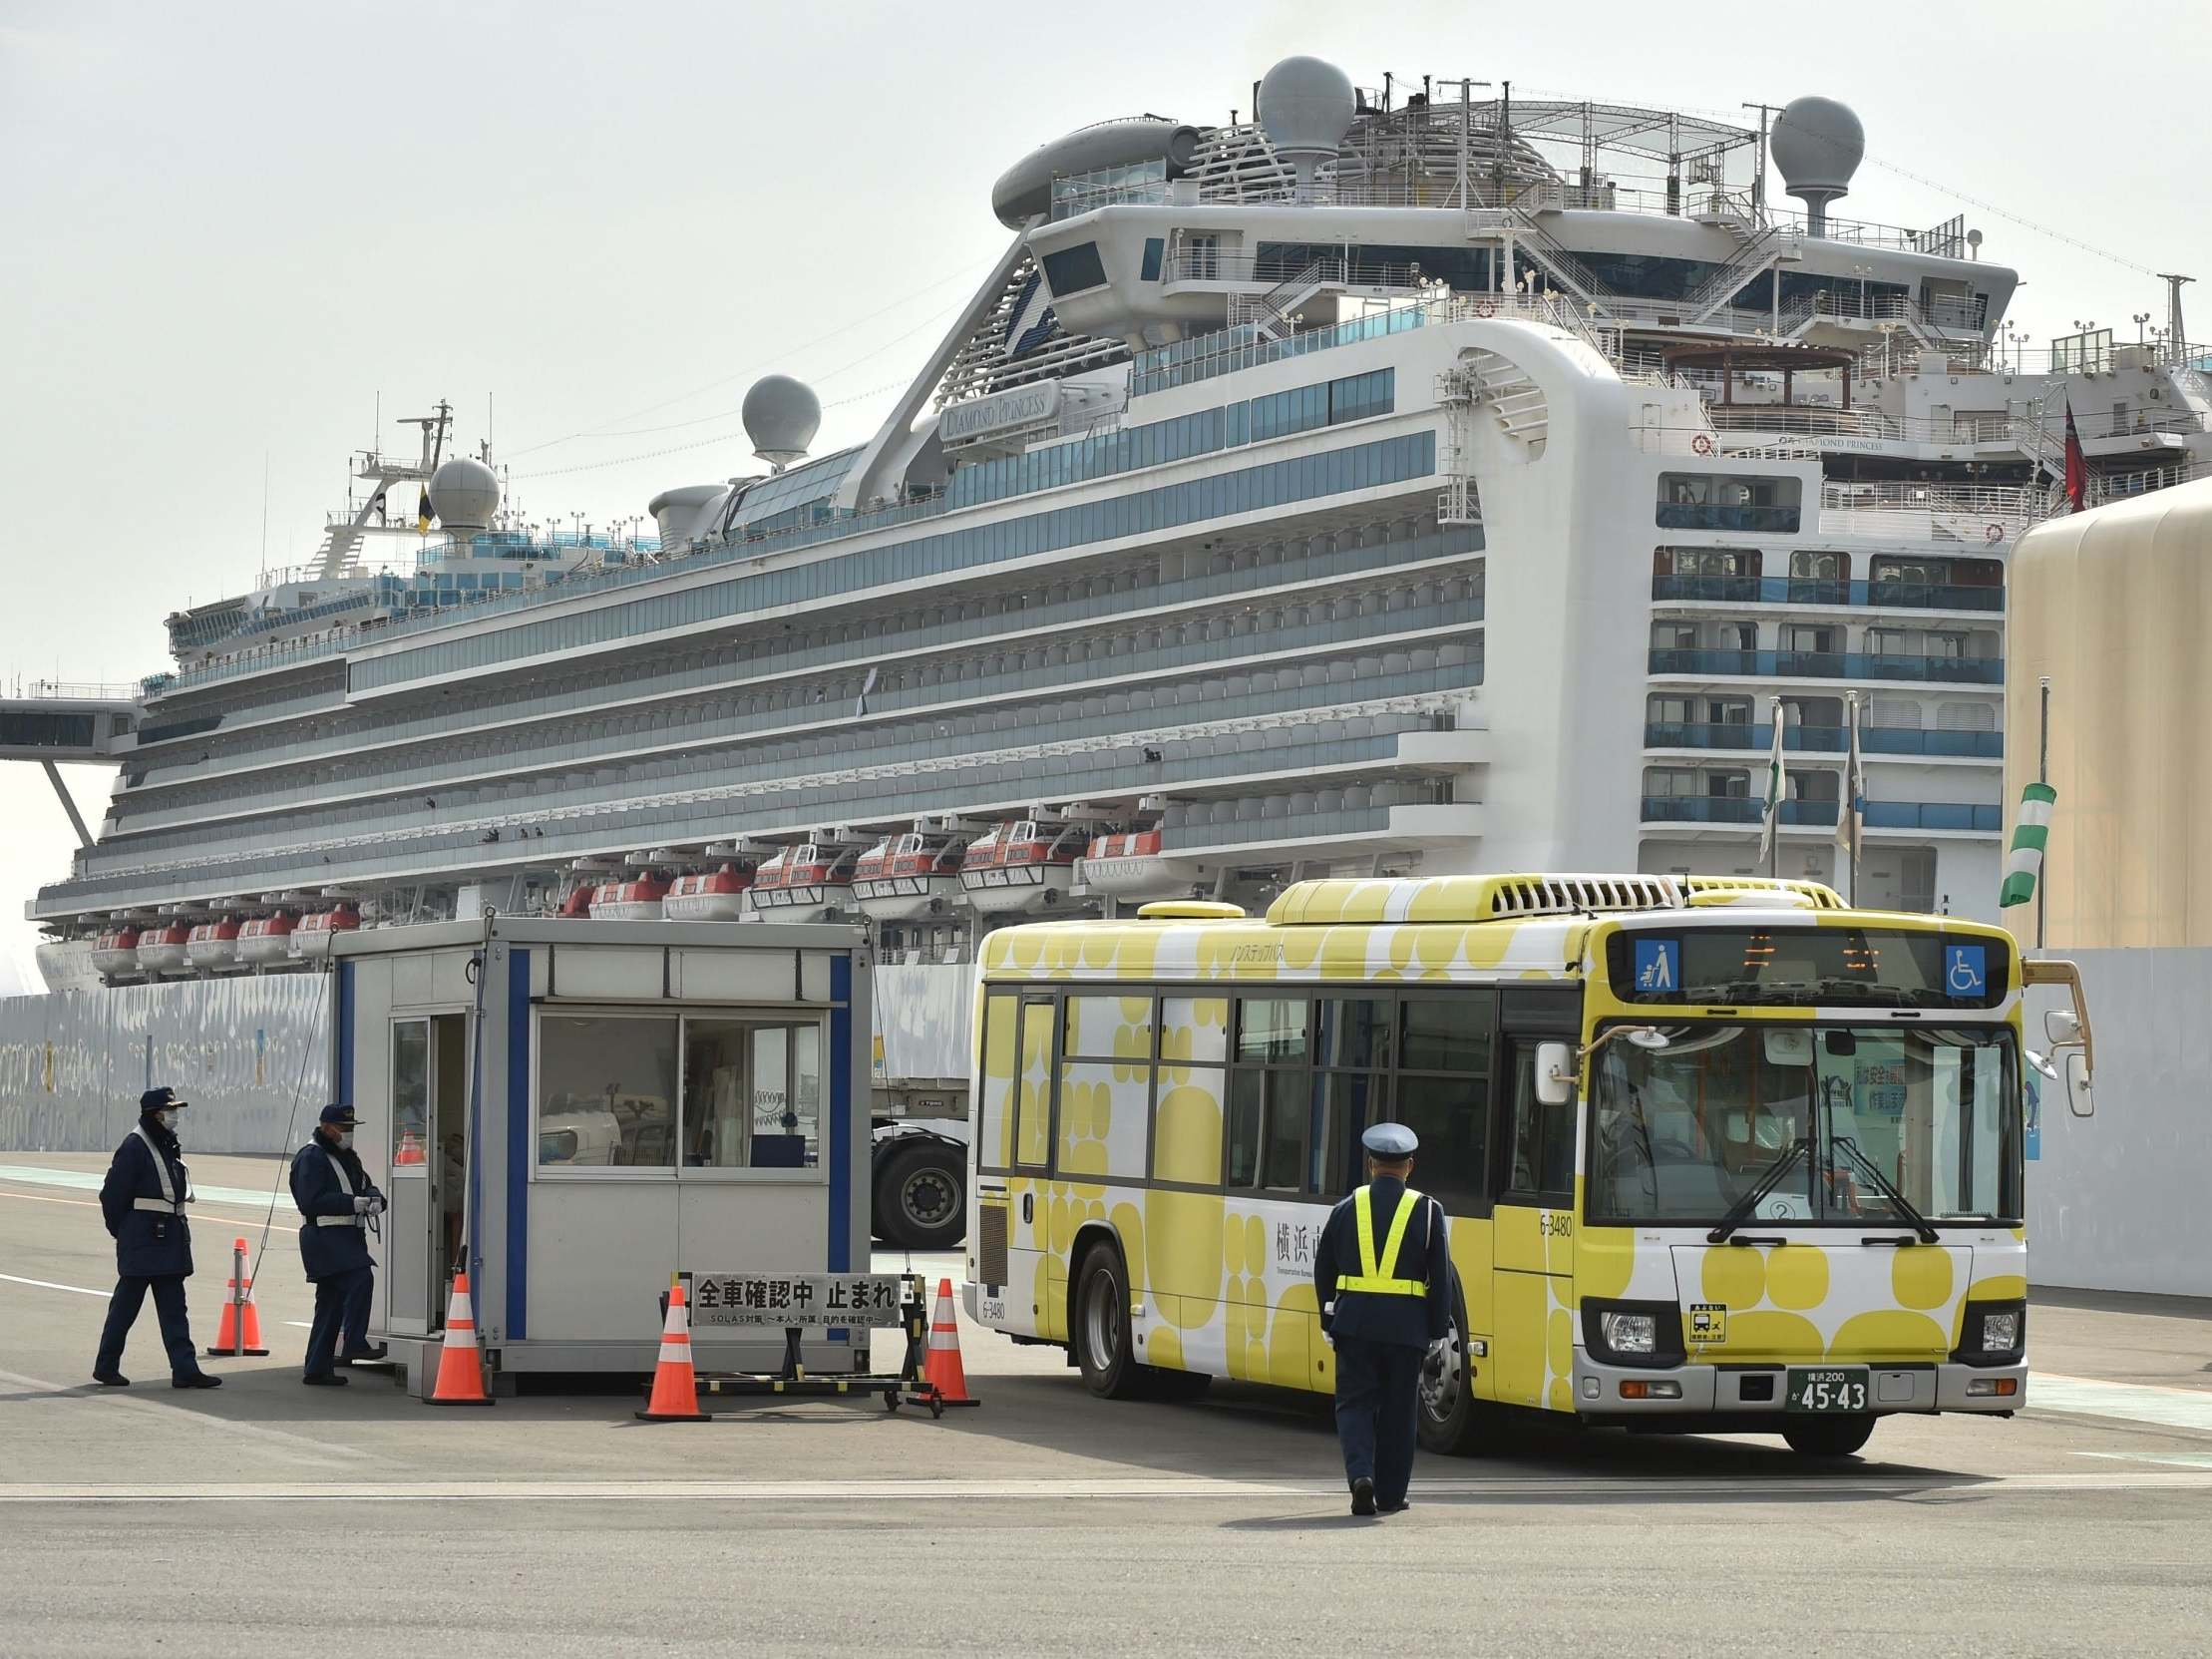 Coronavirus: Two cruise ship passengers die in Japan after contracting virus